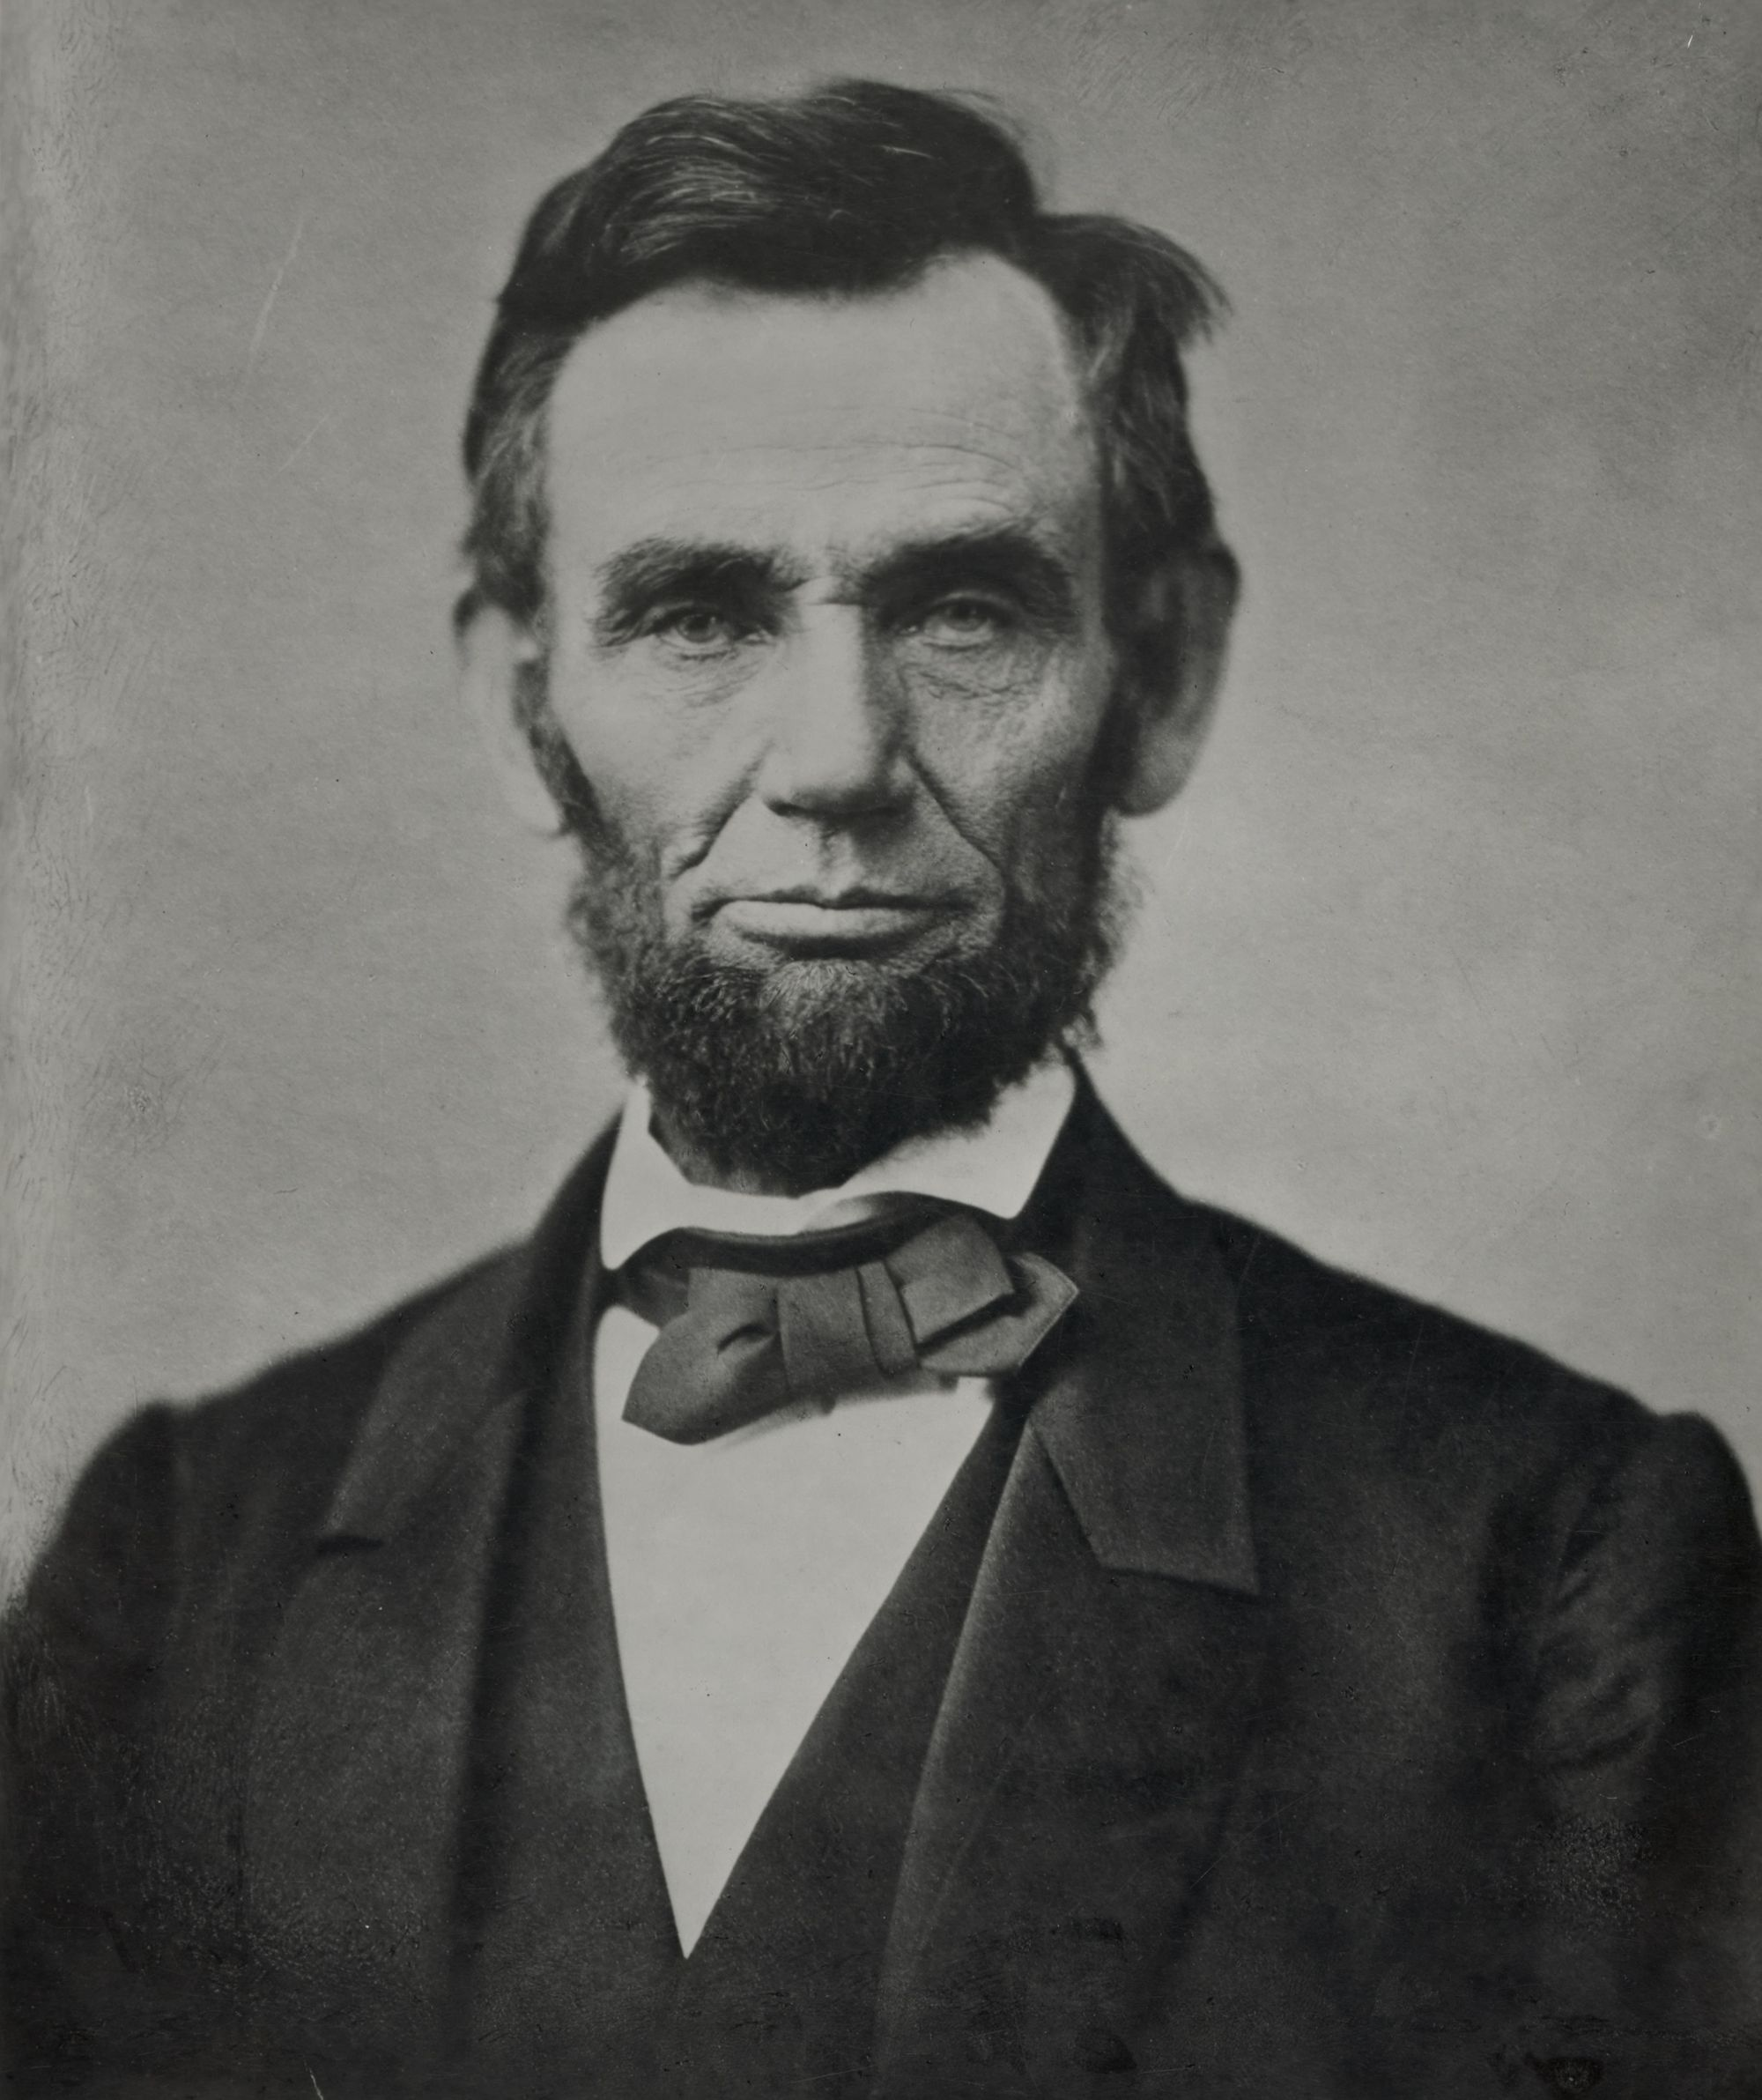 Photographer Matthew Brady asks Abraham Lincoln for permission to record the war